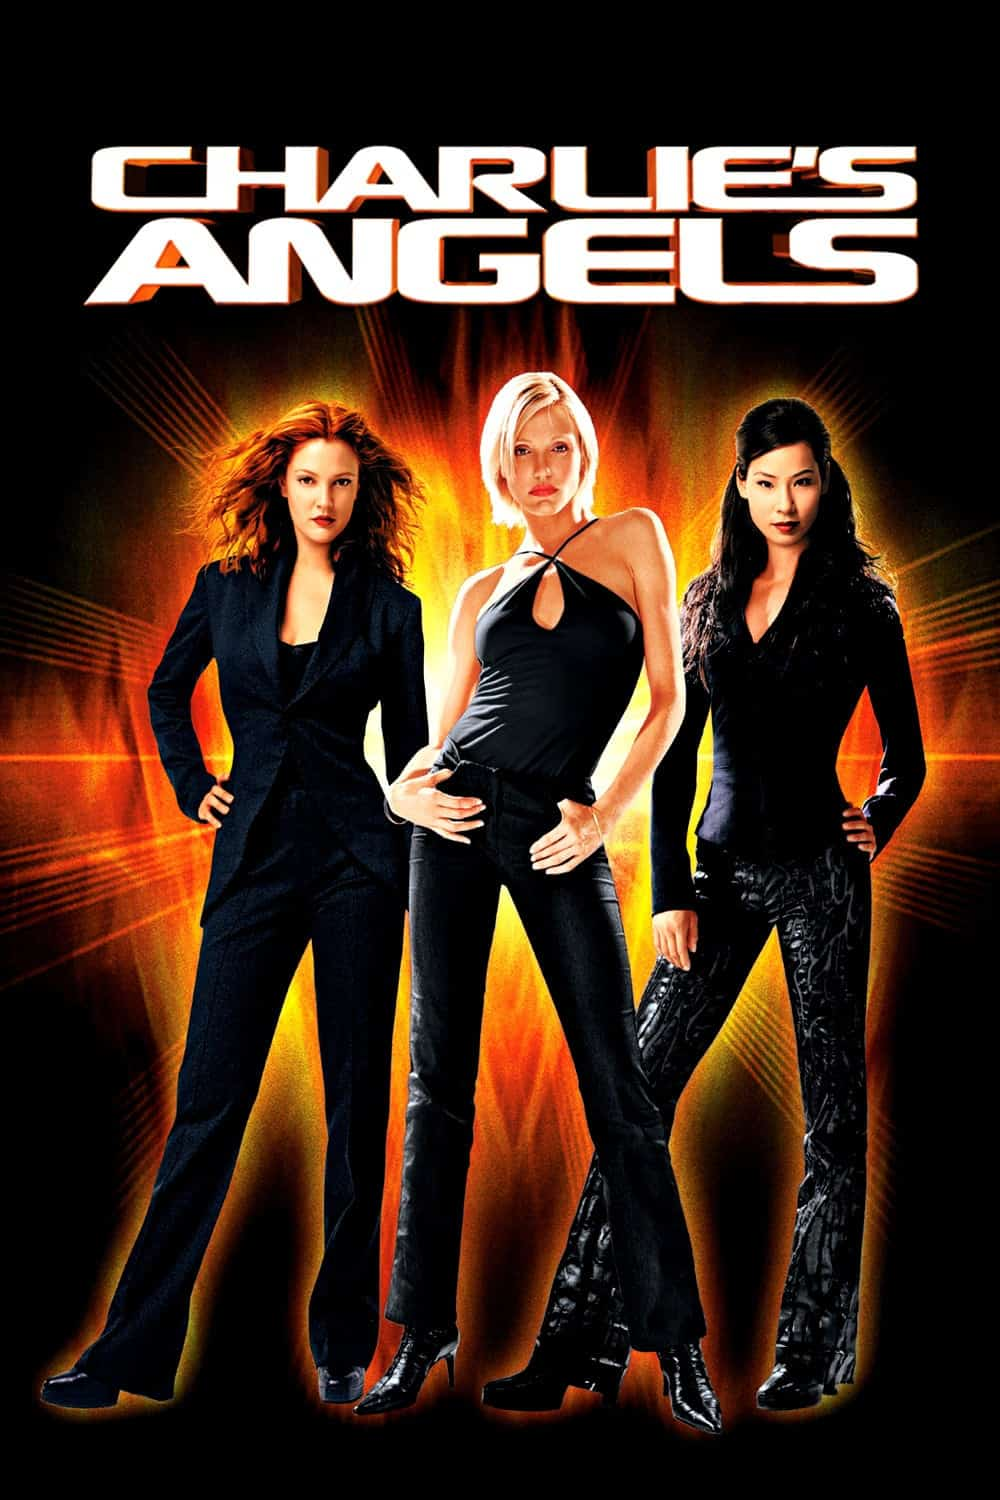 Charlie's Angels, 2000